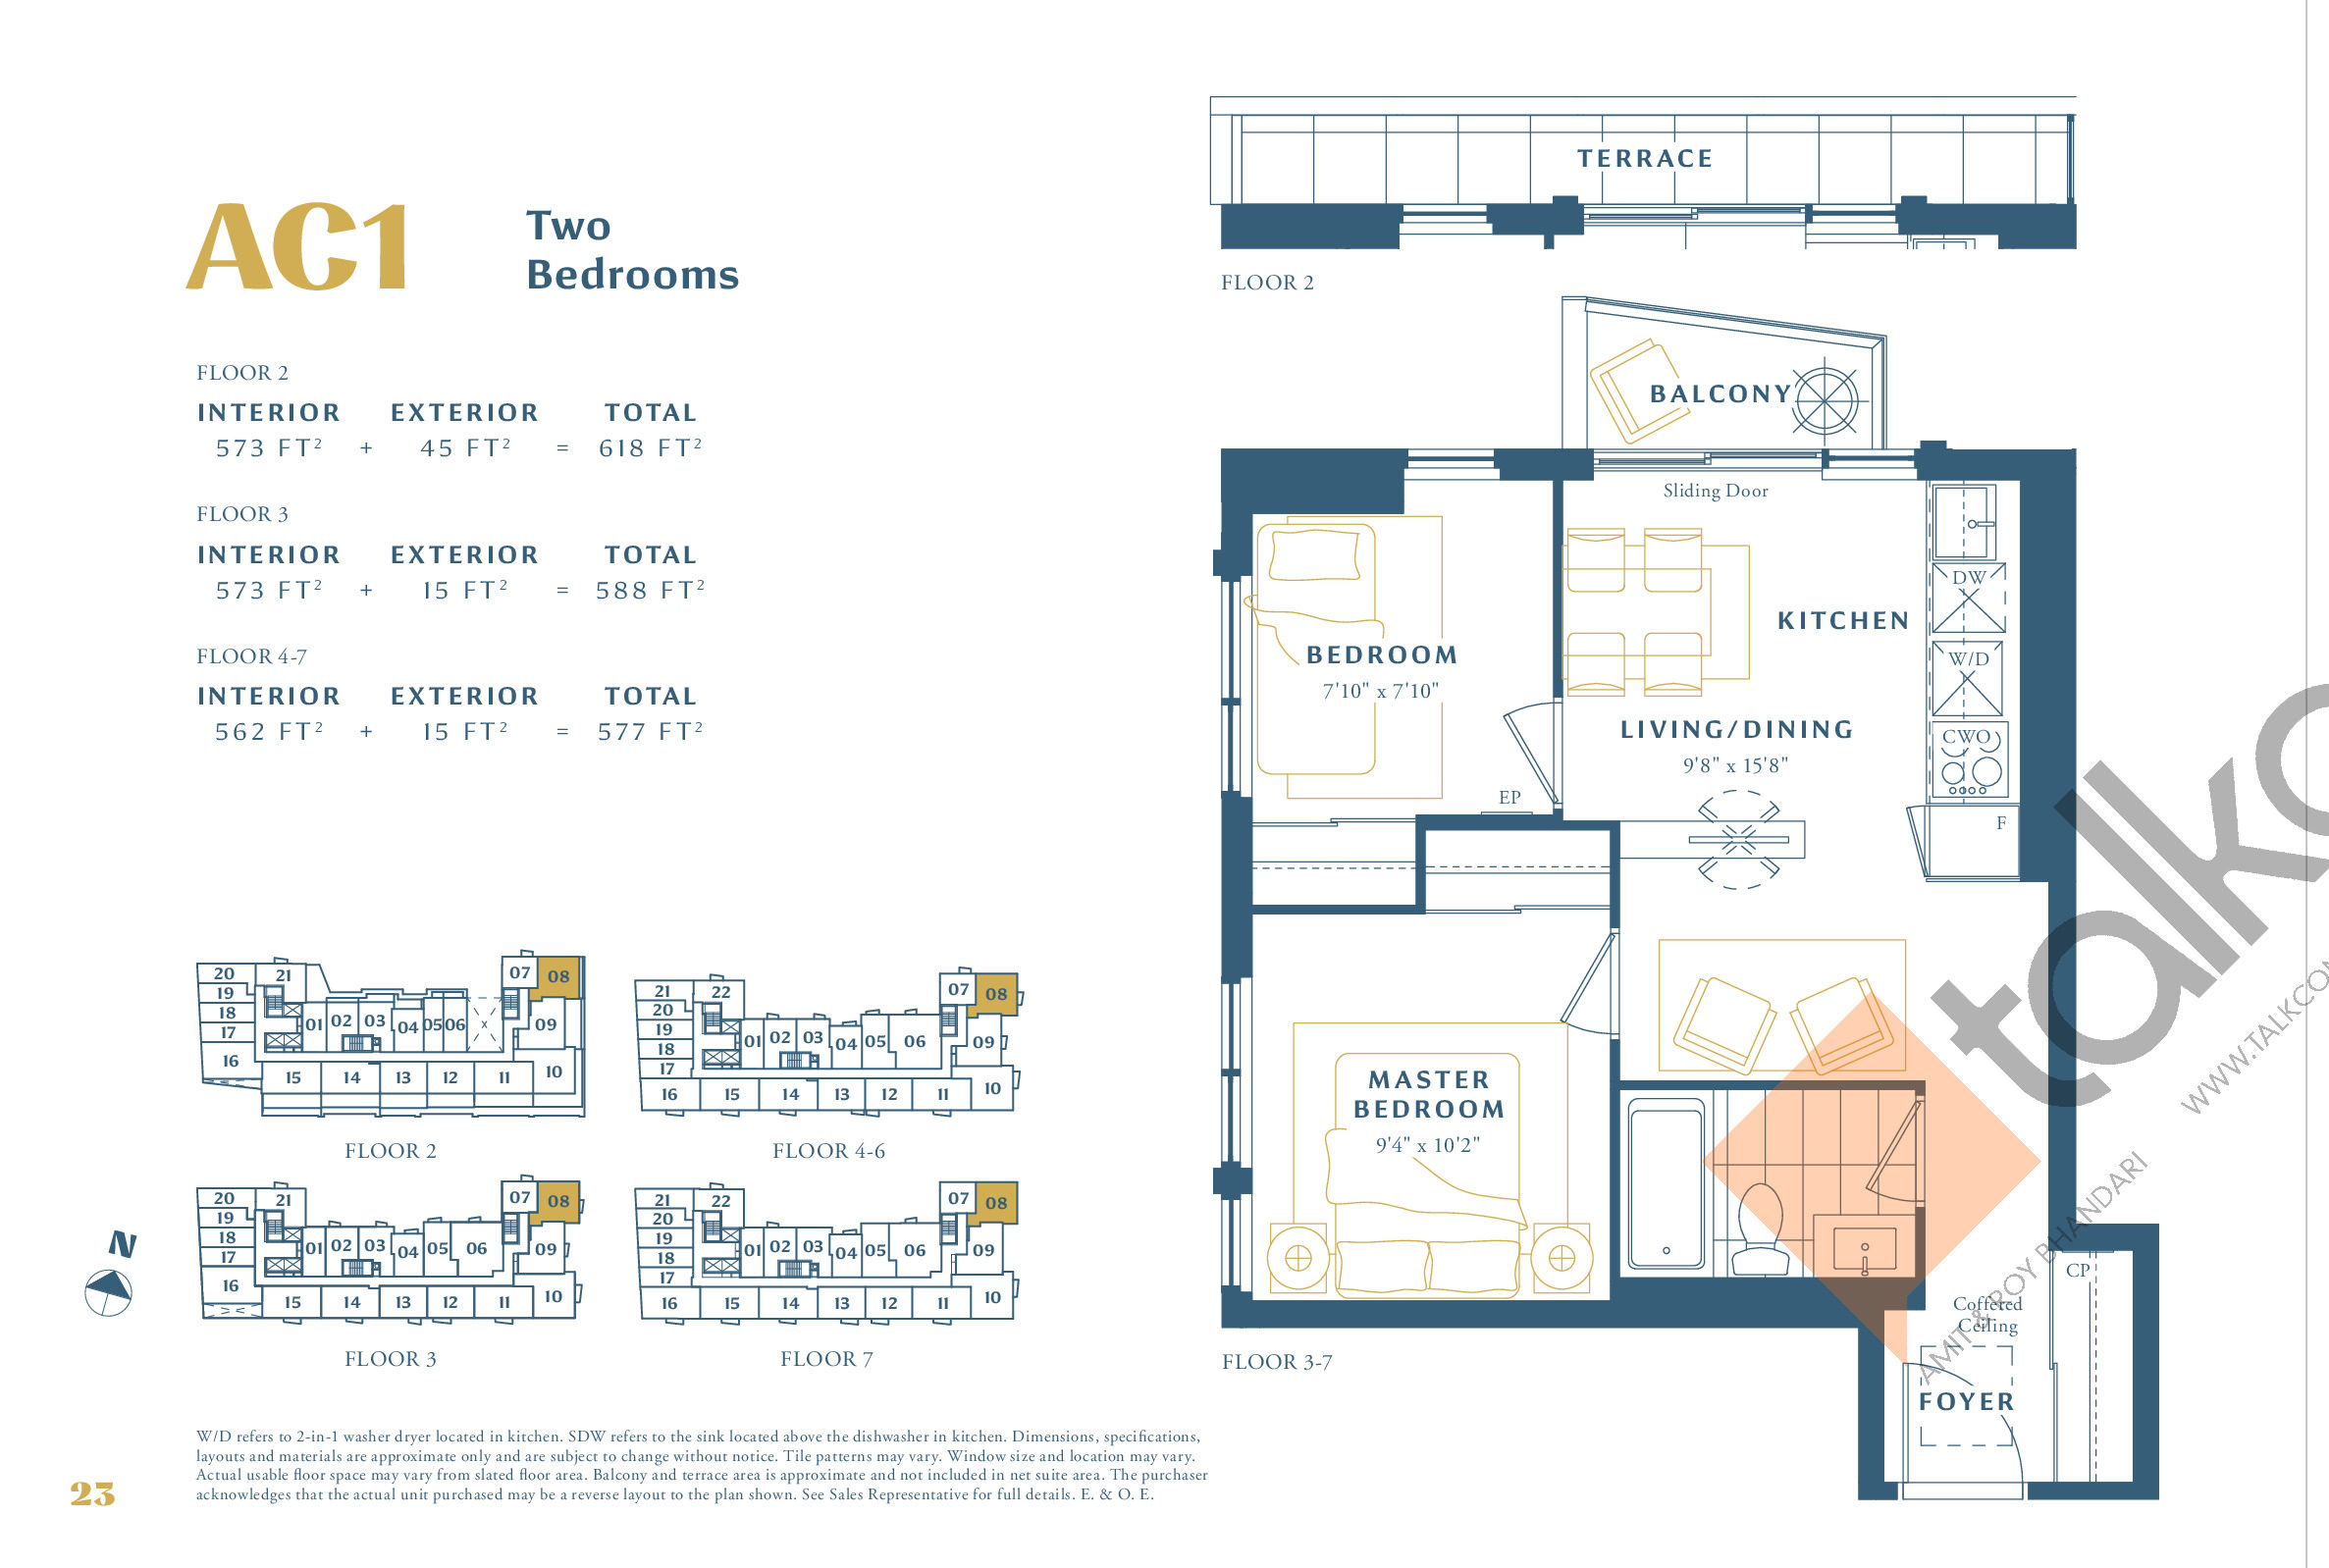 AC1 Floor Plan at The Borough Condos - Tower A - 573 sq.ft